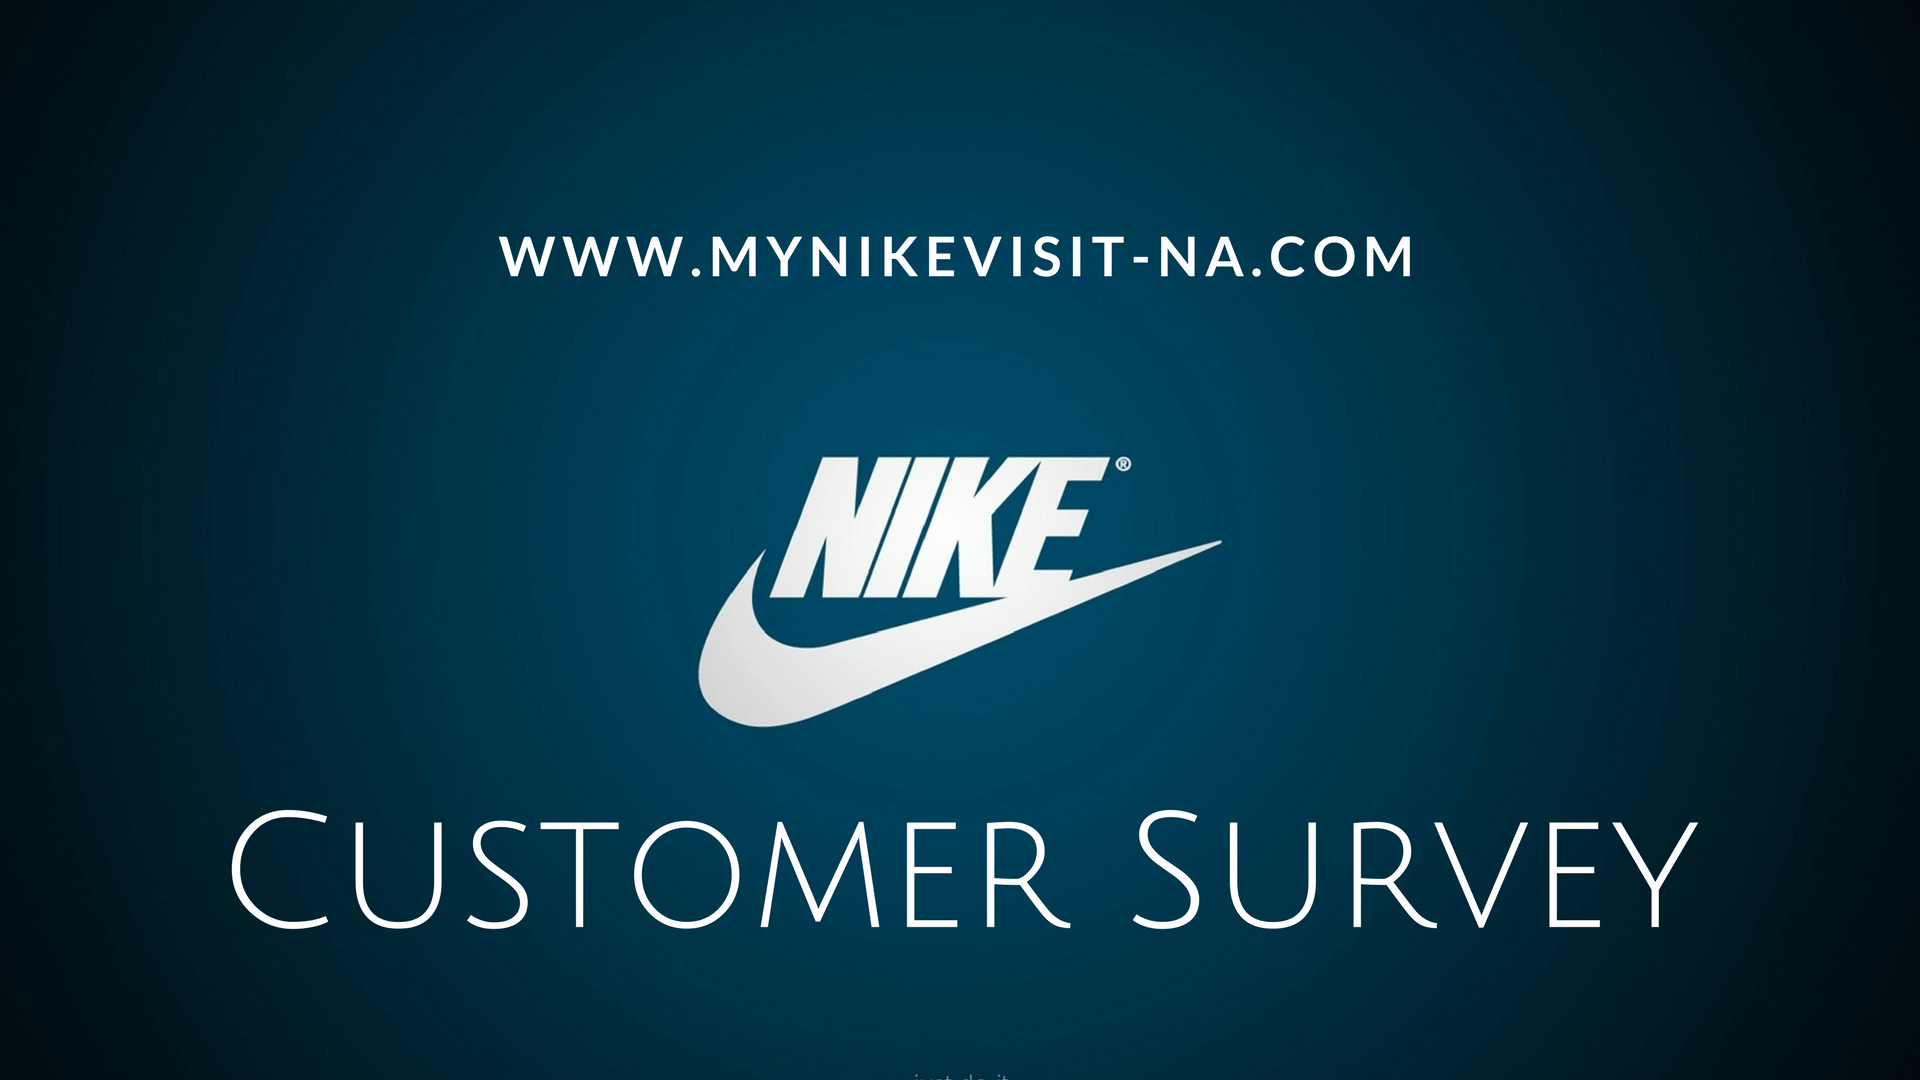 Mynikevisit: Take Official Nike® Survey At www.MyNikeVisit-na.com And Get $10 Gift Card